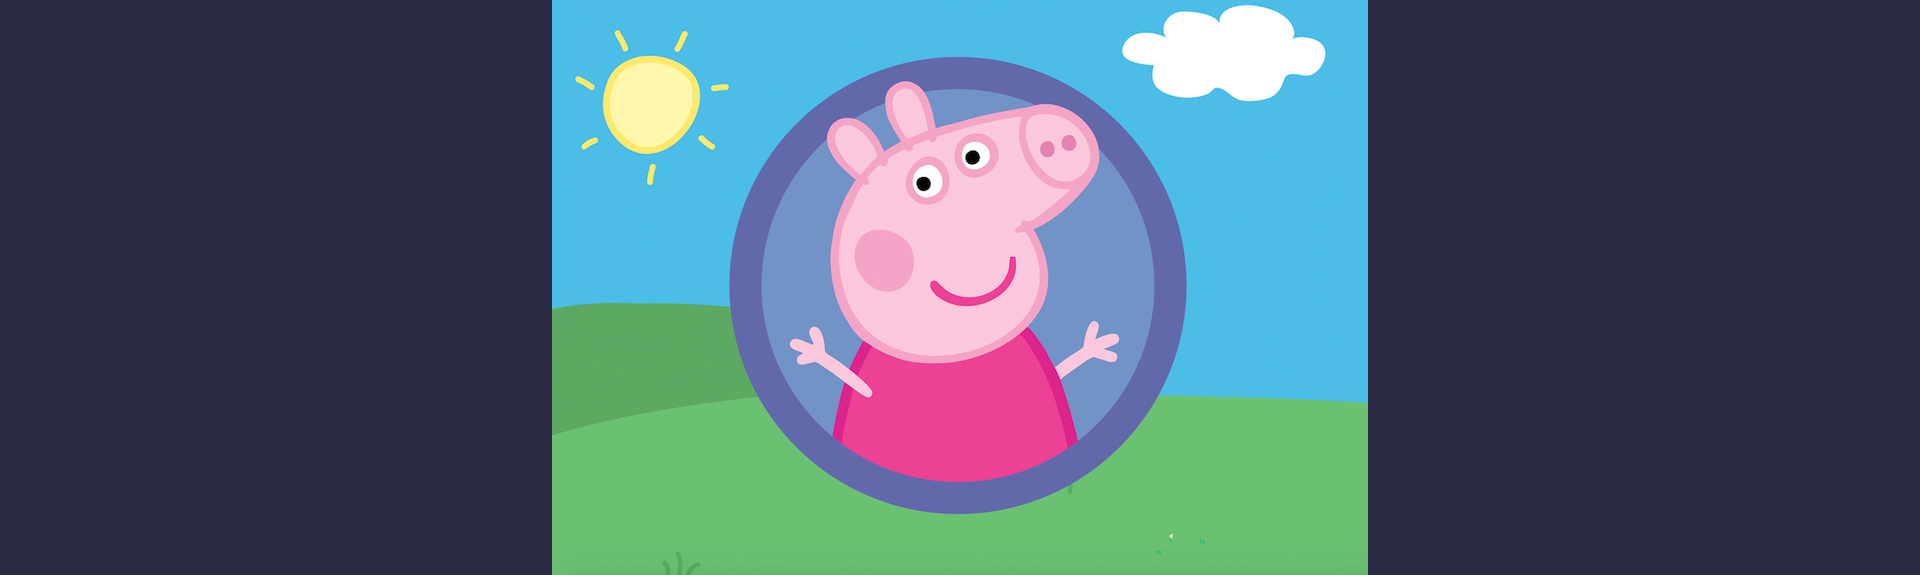 Peppa Pig - Show - Johannesburg - Things to do with kids